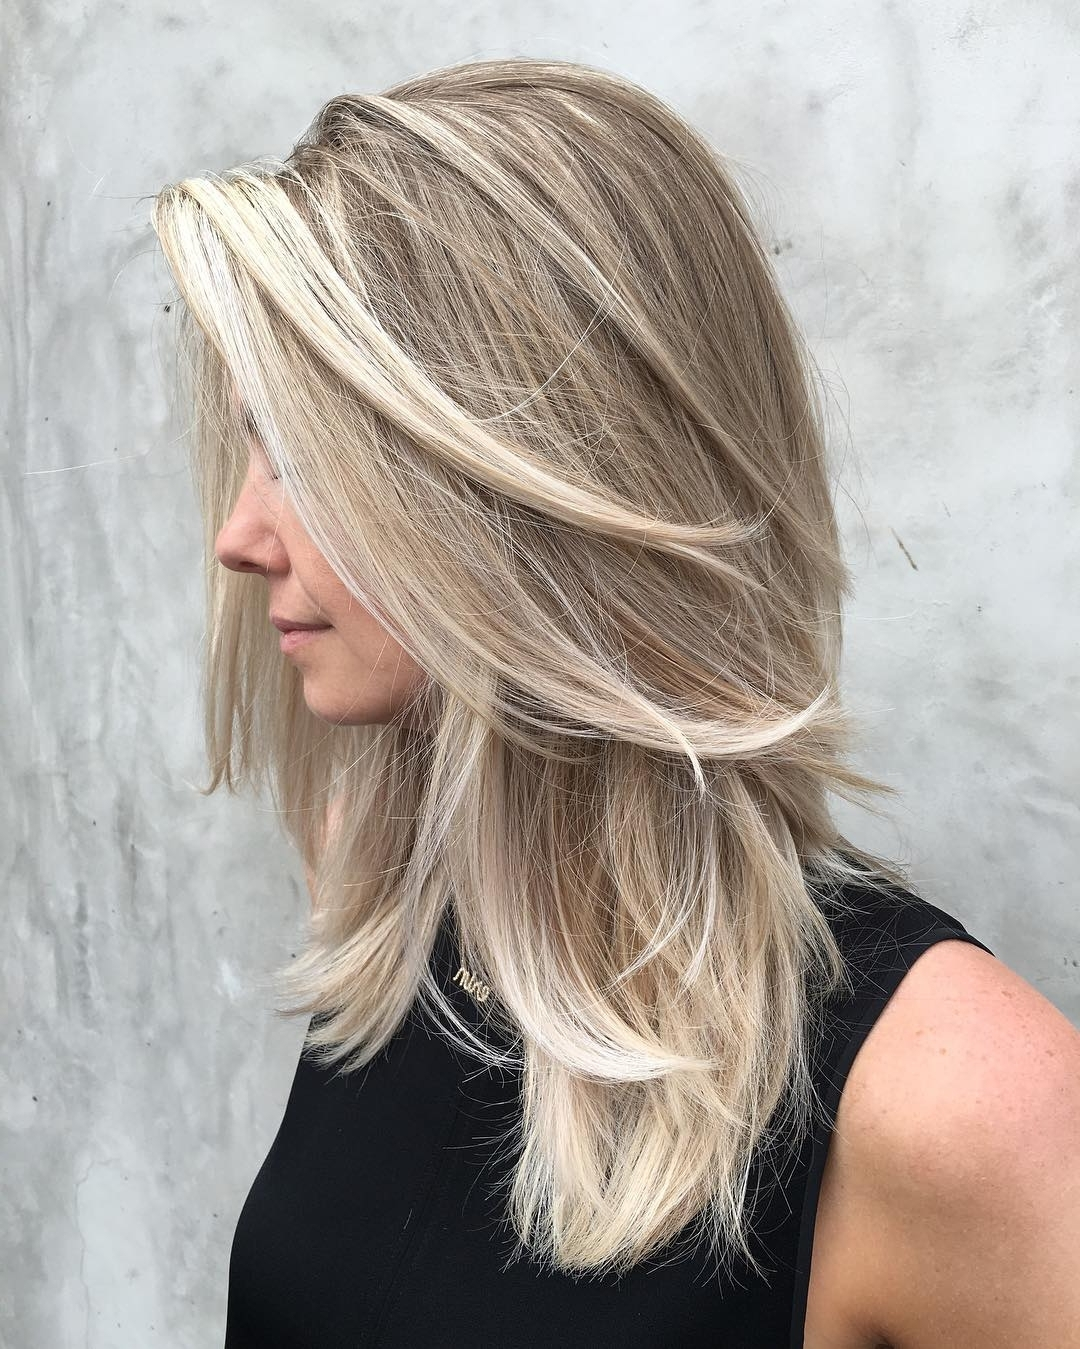 20 Beautiful Blonde Hairstyles To Play Around With With Regard To Most Up To Date Dishwater Waves Blonde Hairstyles (View 1 of 20)